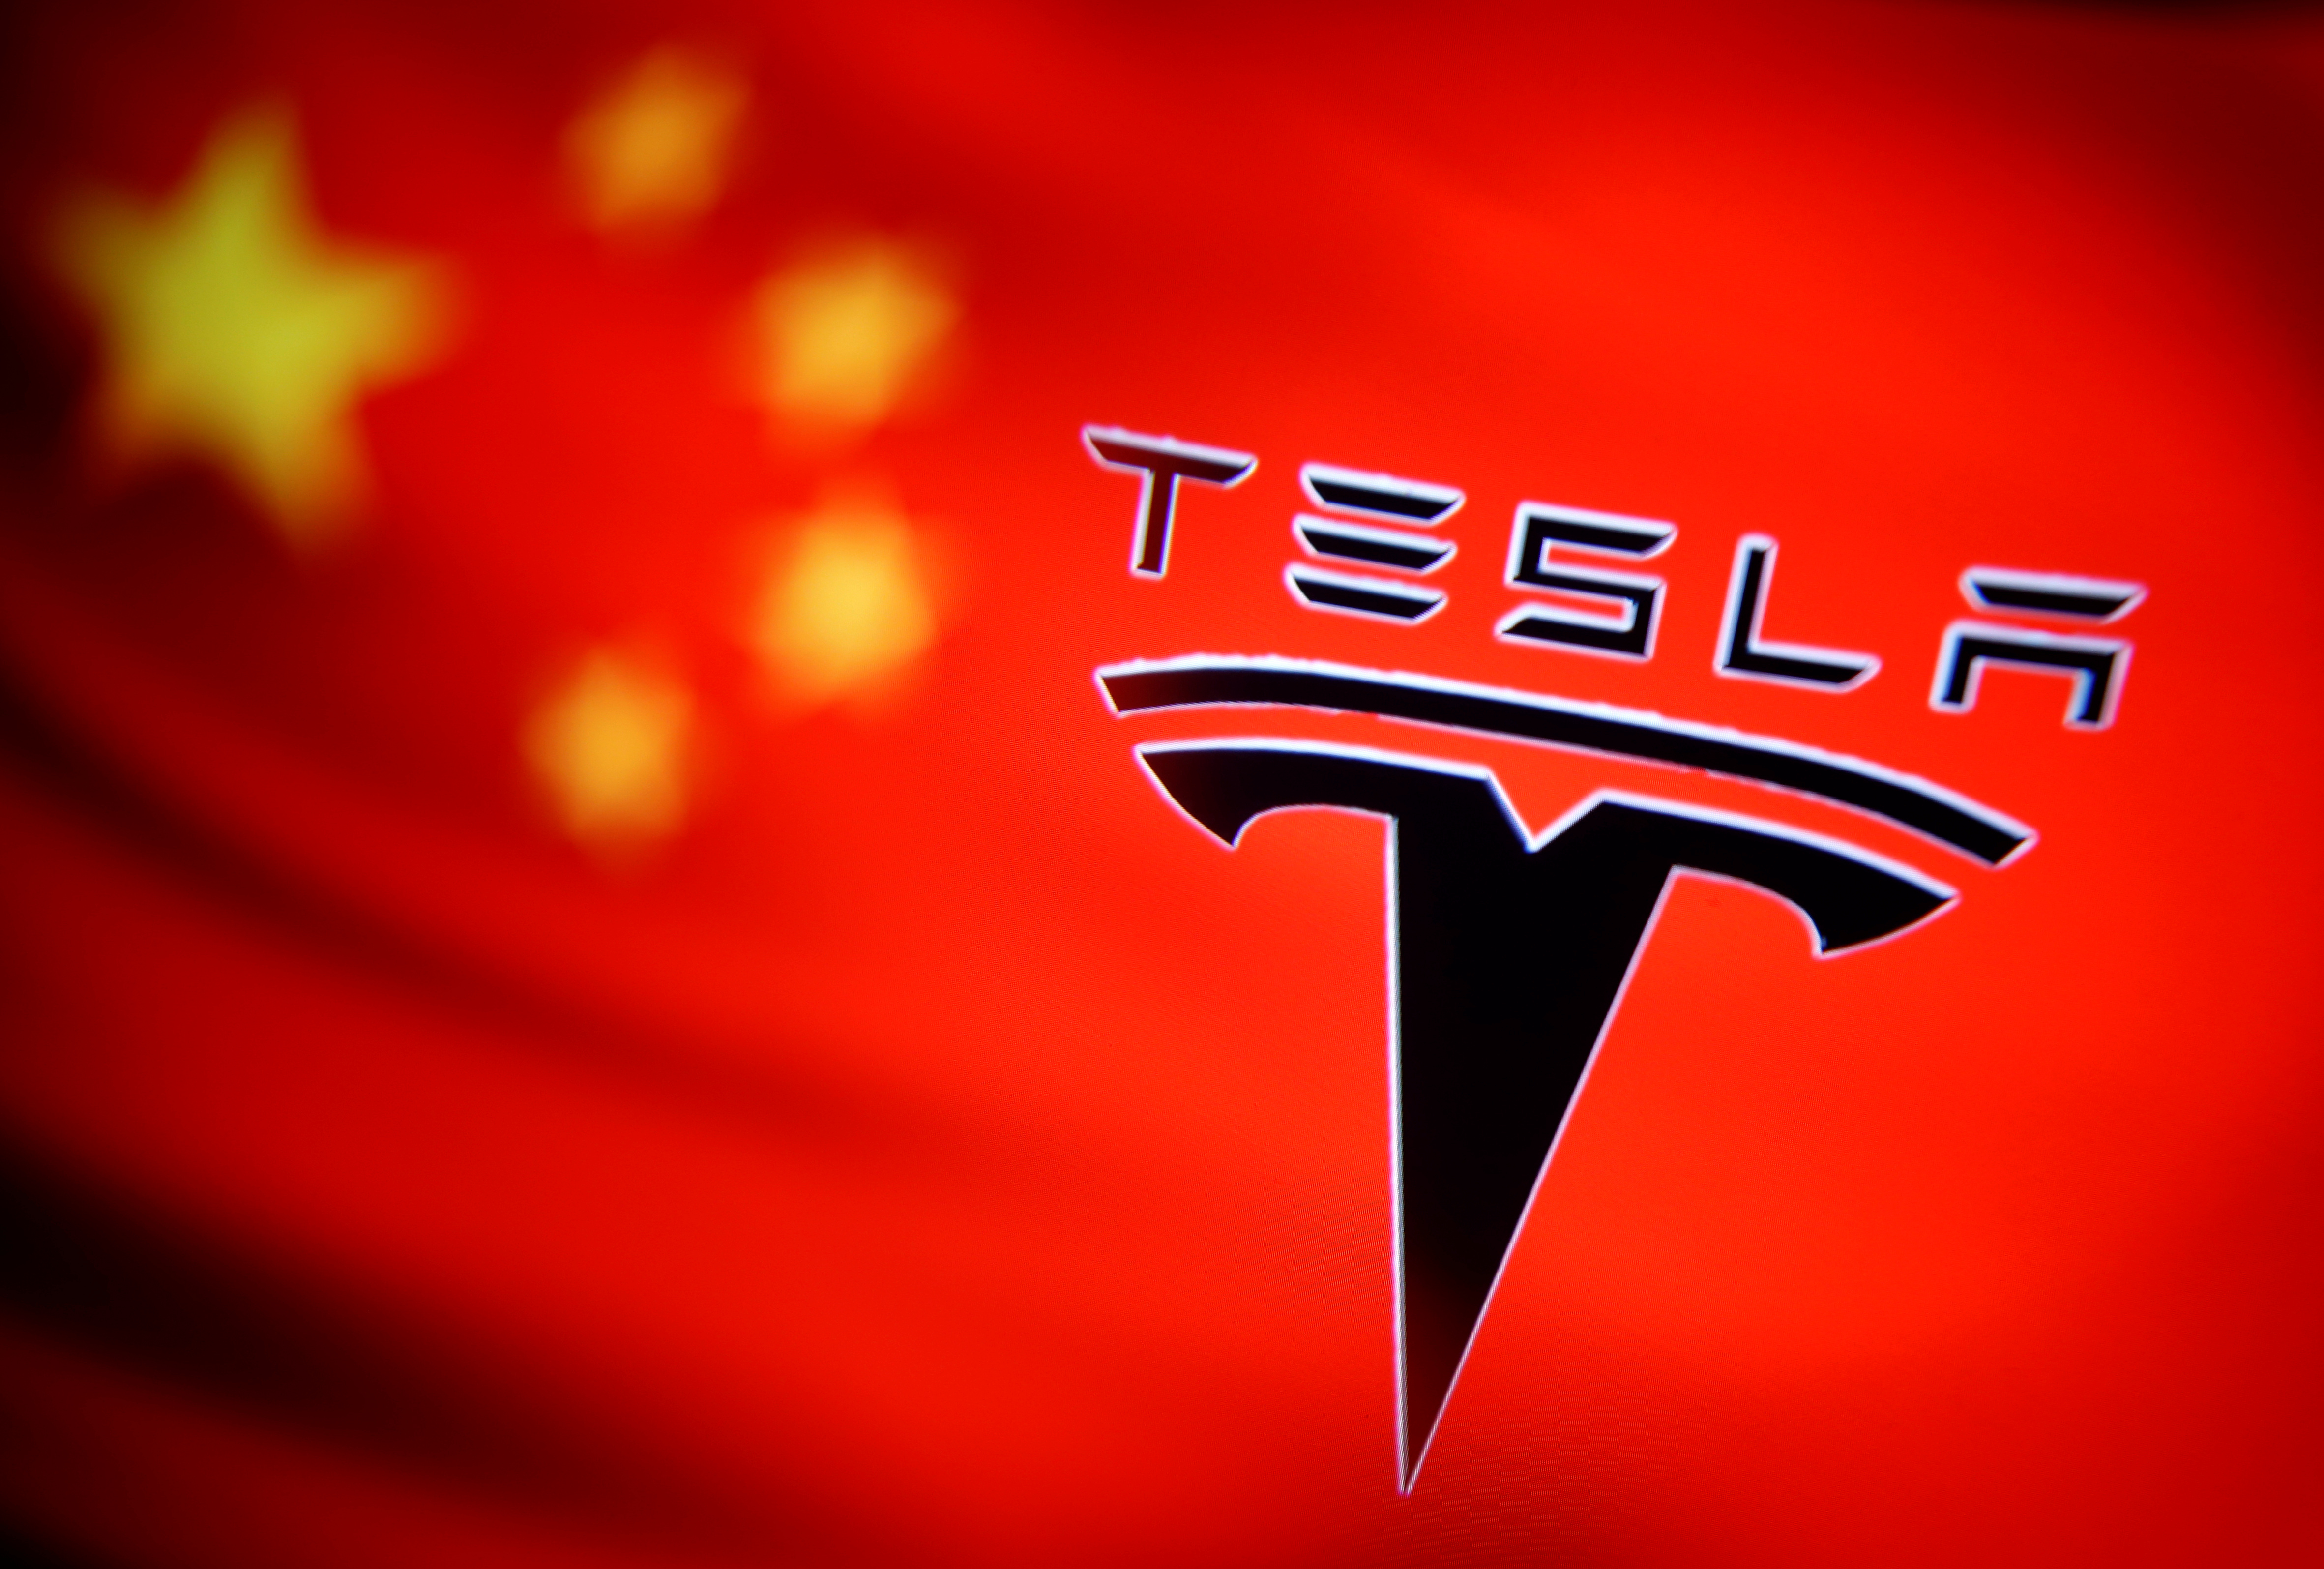 Tesla disappoints as China EV rivals hurt margins